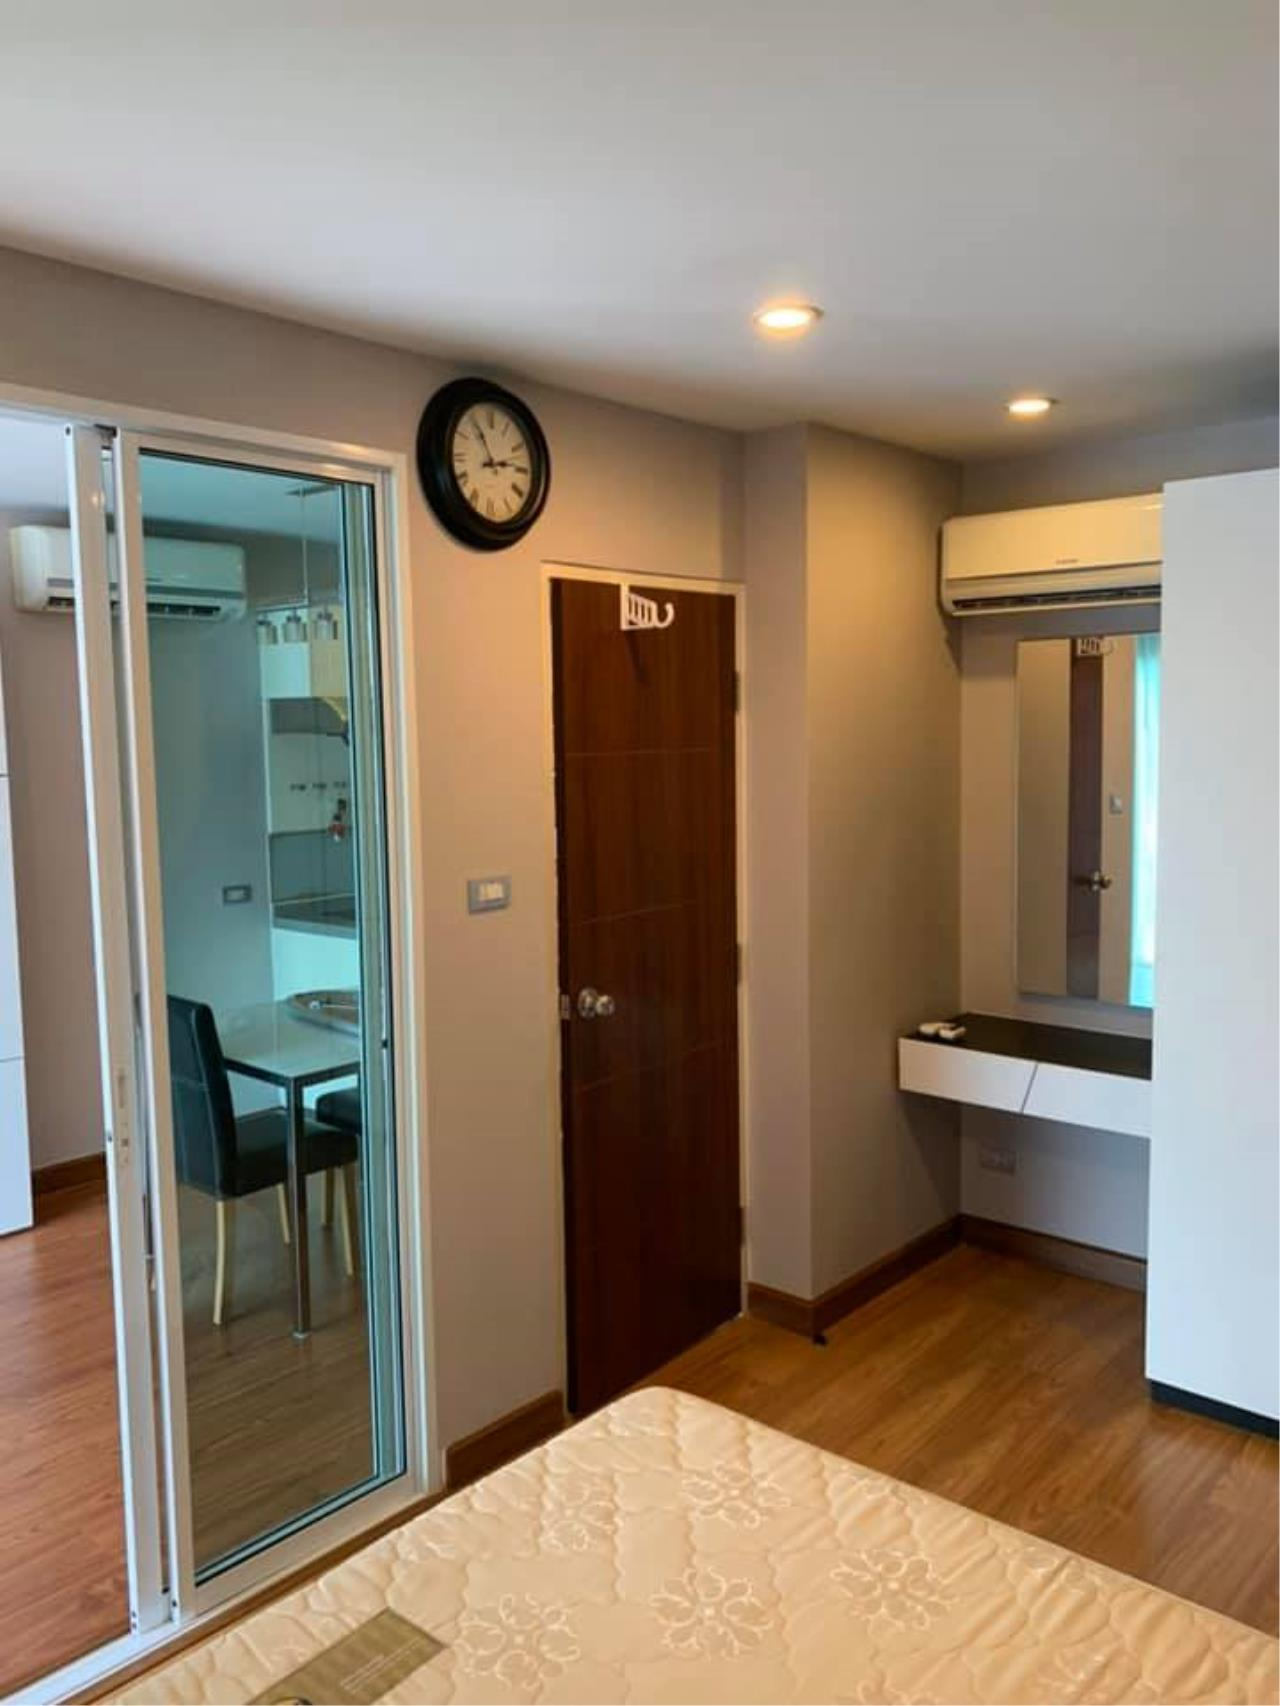 Agent Thawanrat Agency's Condo for rental TOURMALINE GOLD SATHORN – TAKSIN Near BTS.Krung Thon Buri. 1 bedroom,1 bathroom. size 40 sqm.Floor 10 th. fully furnished Ready to move in 13